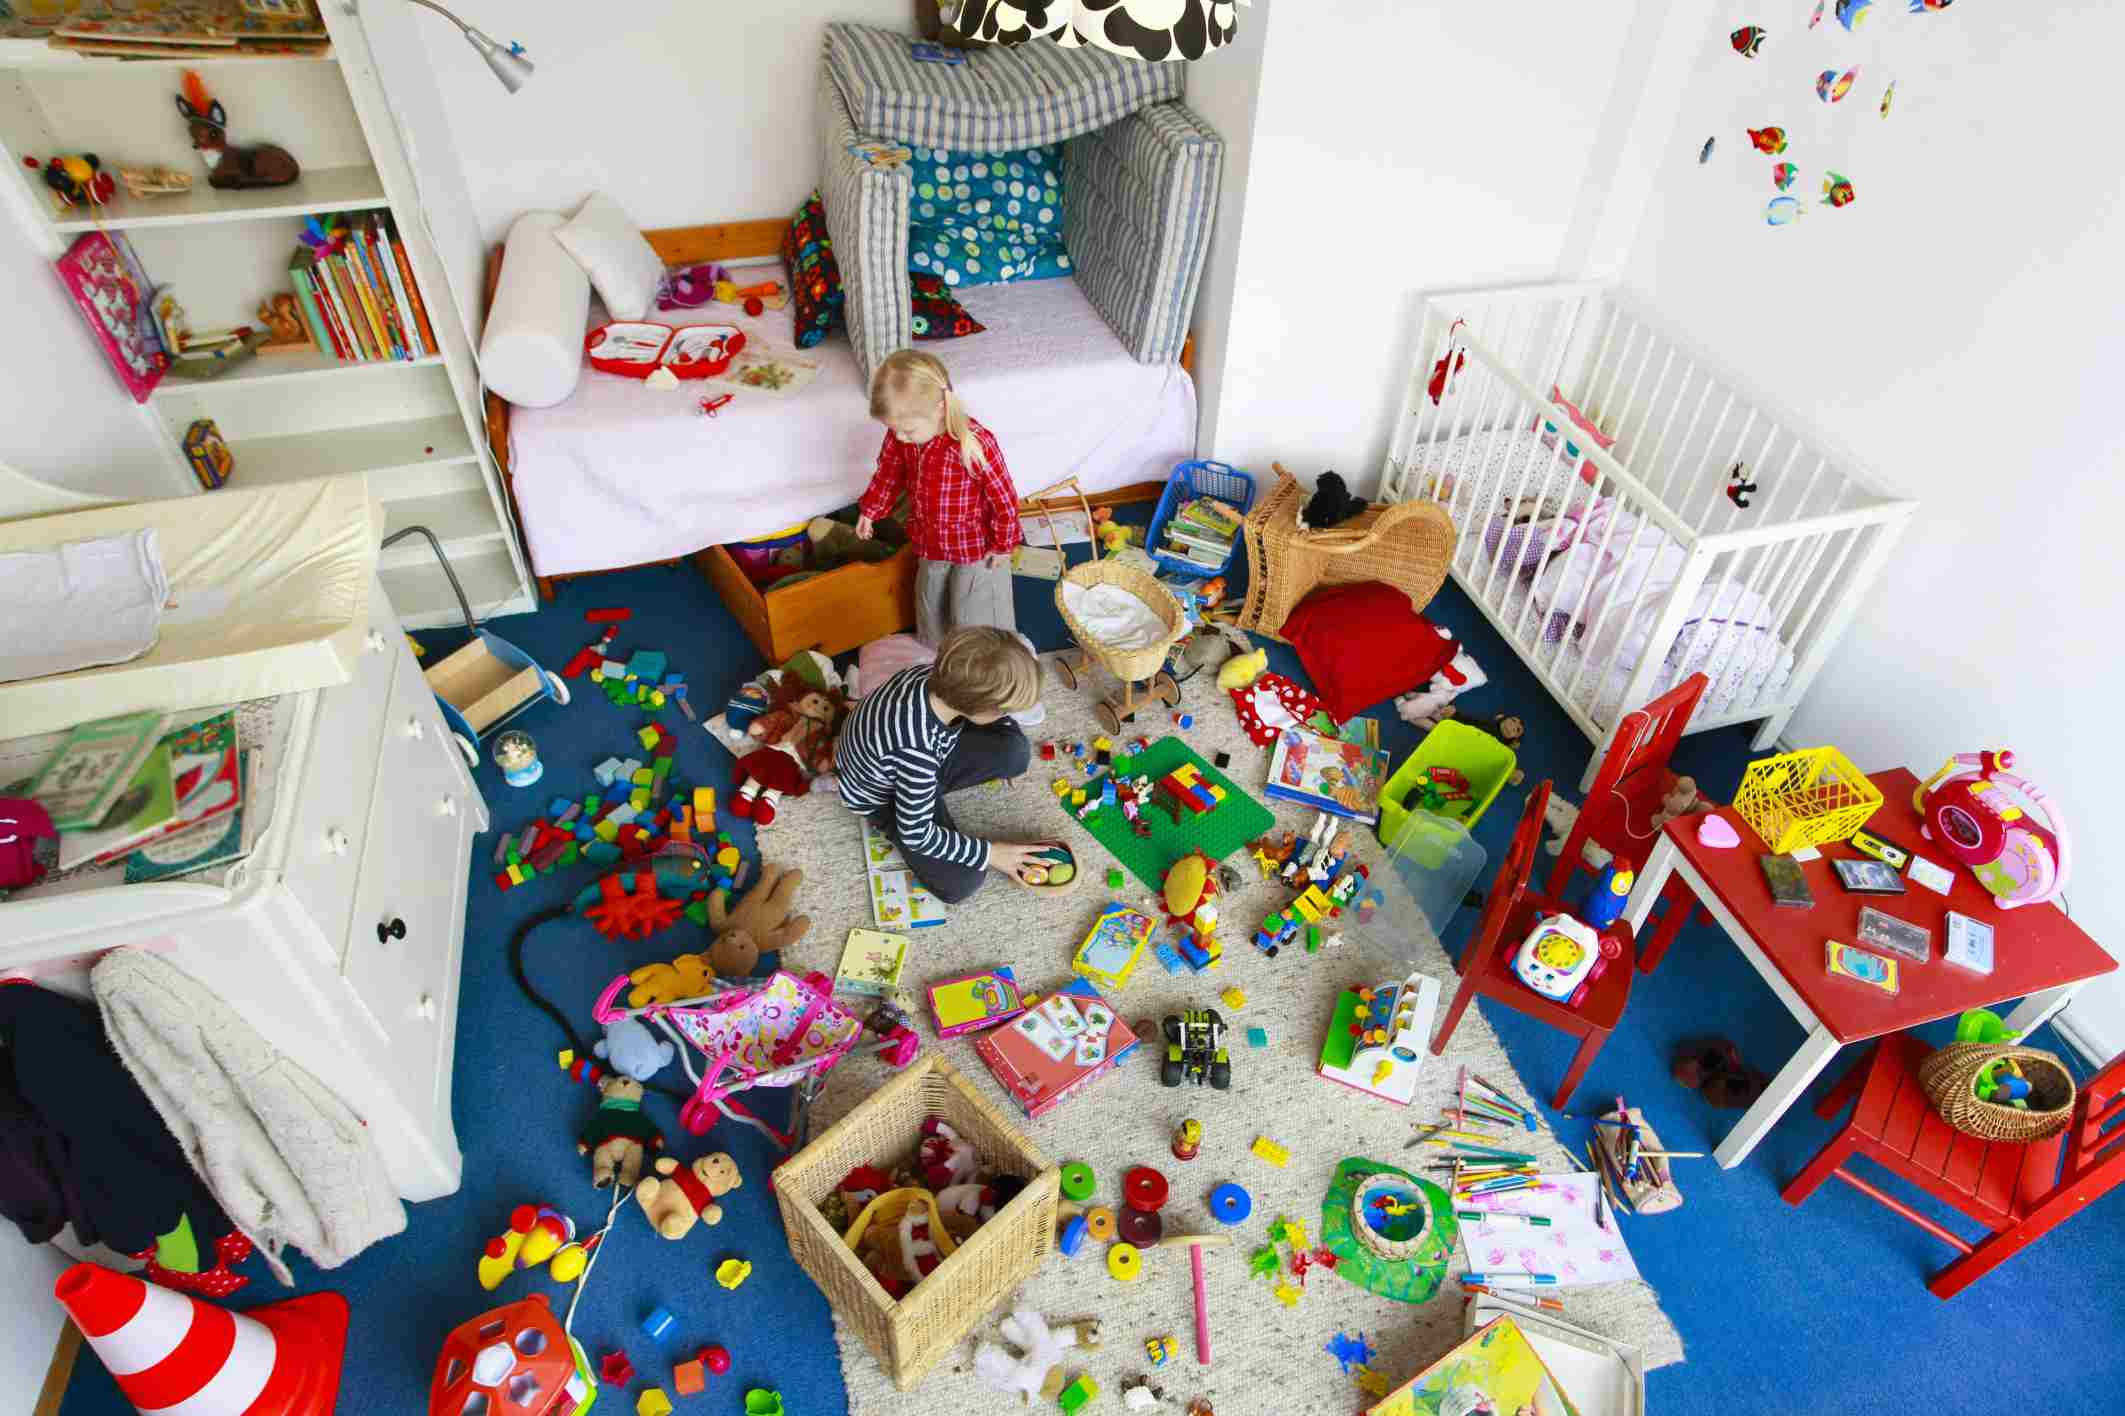 children in a messy room